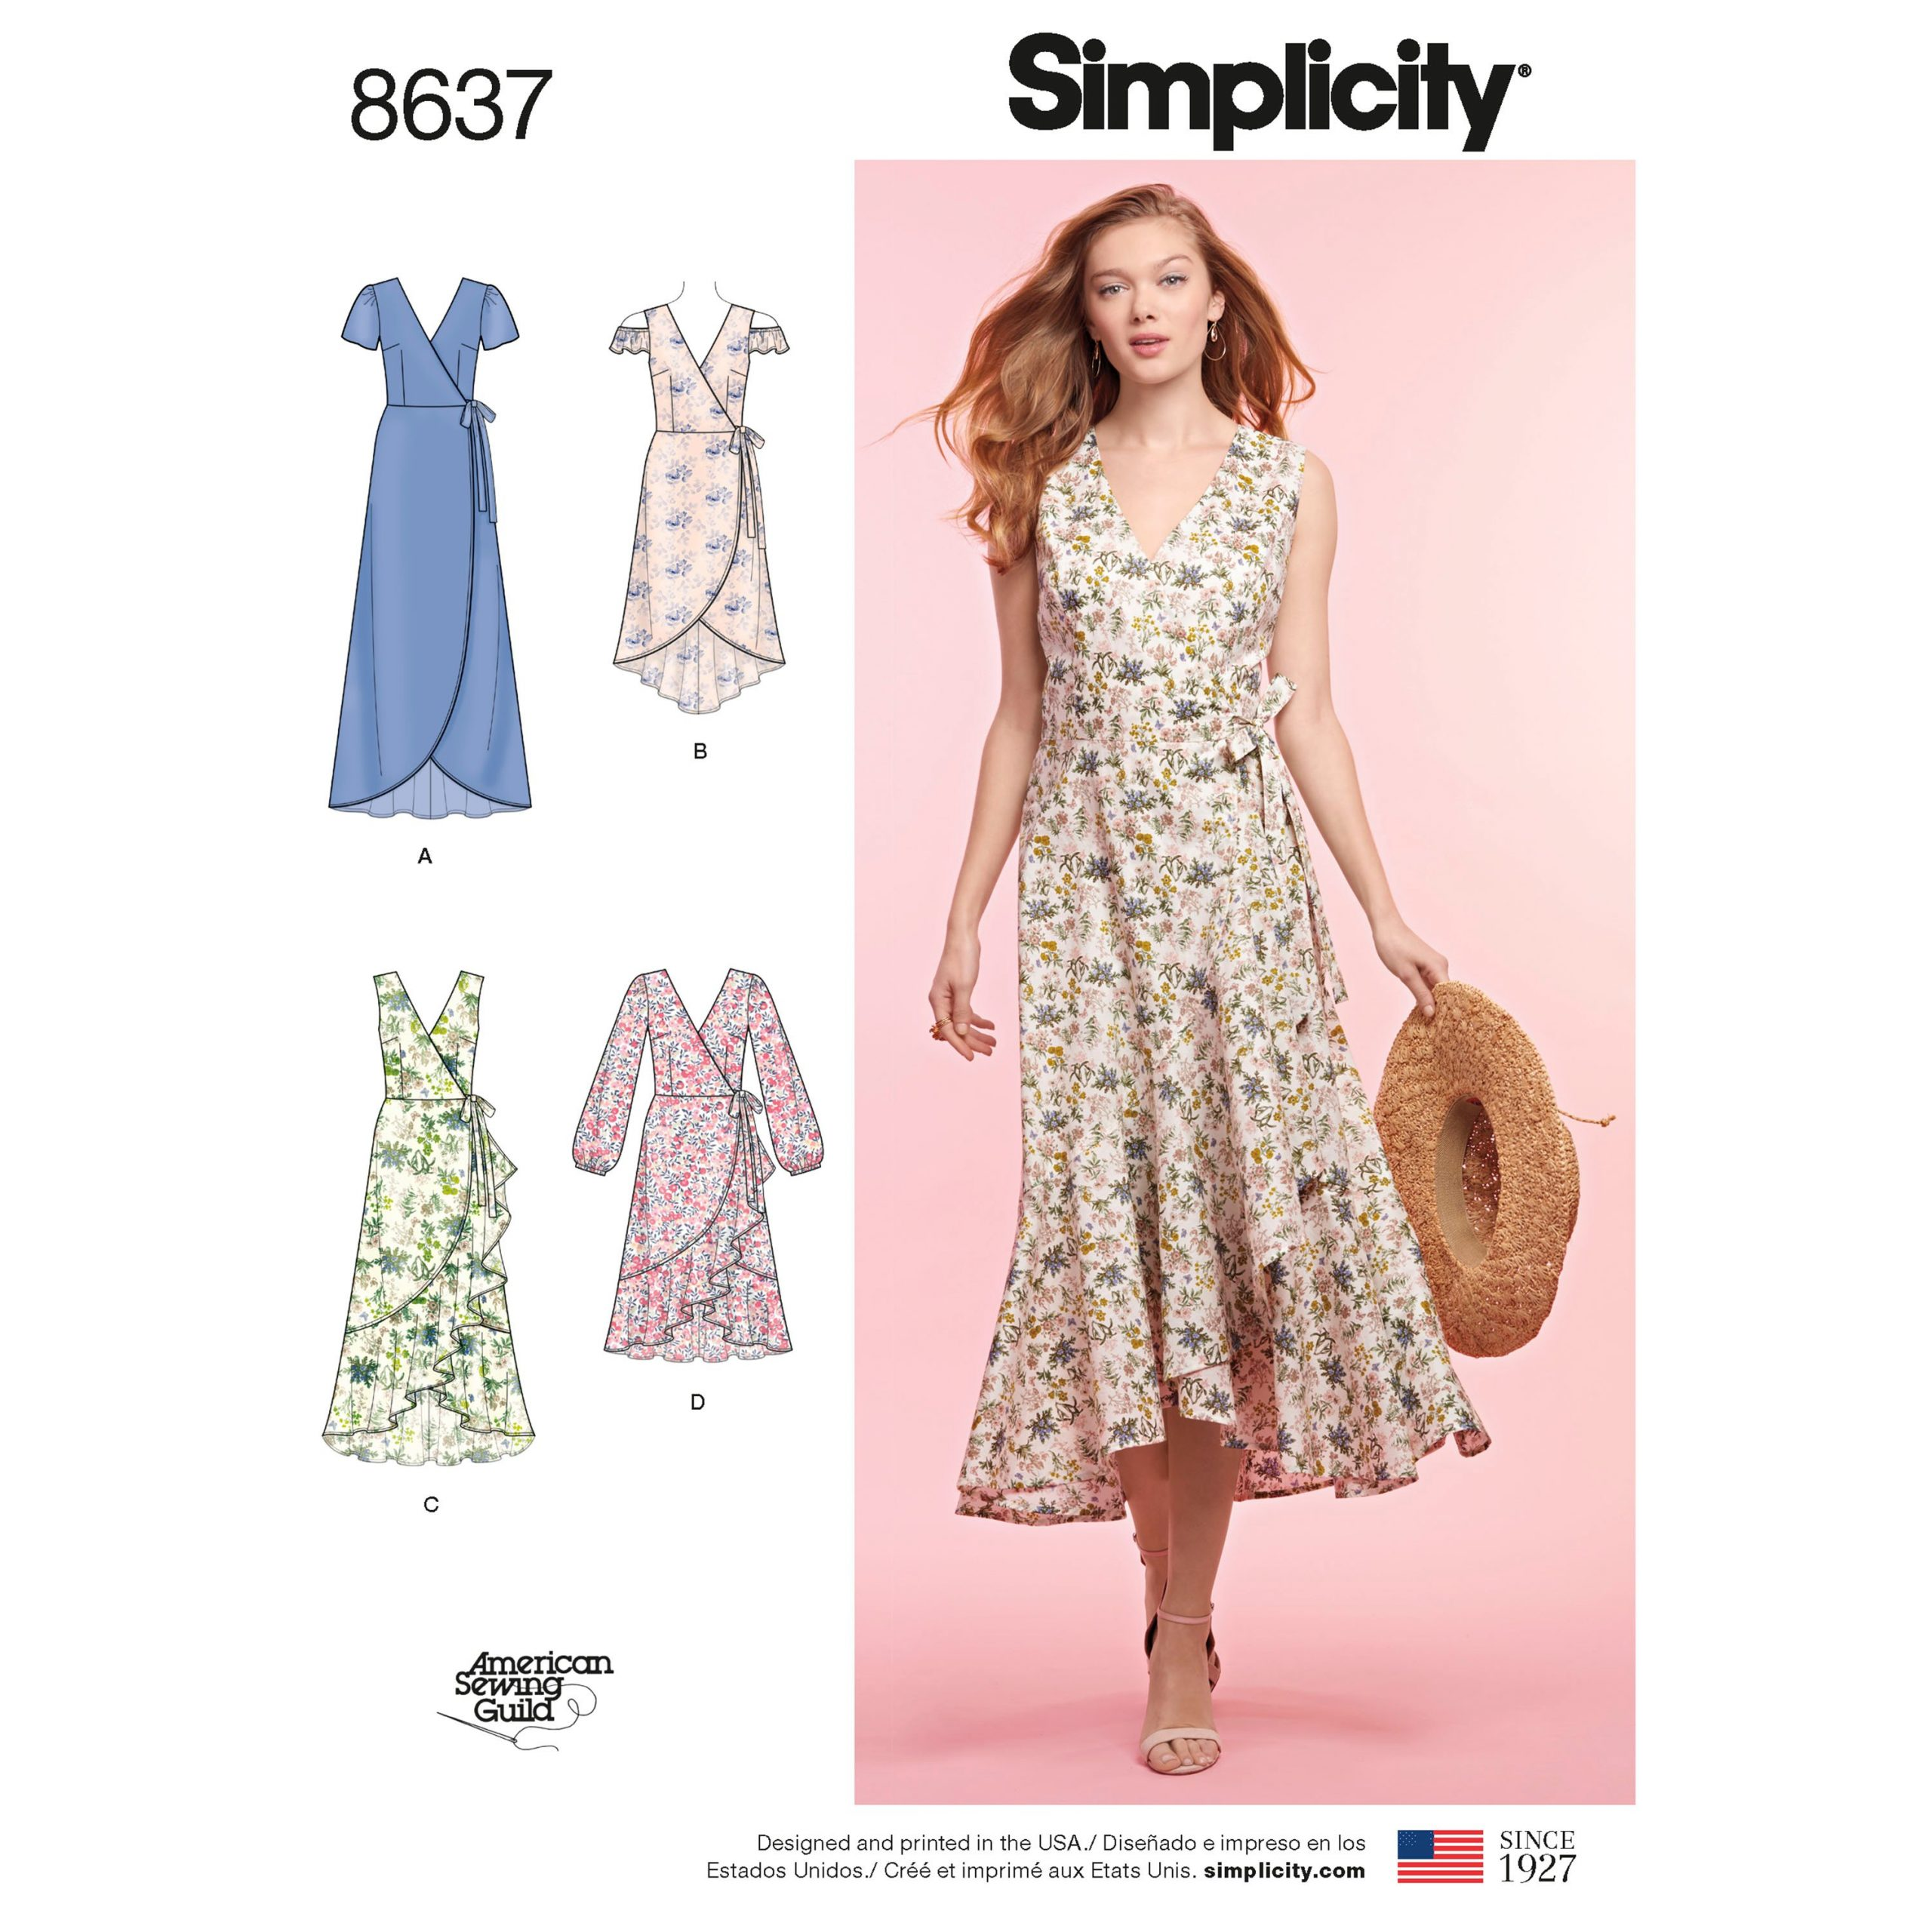 Simplicity wrap dress sewing pattern cover.